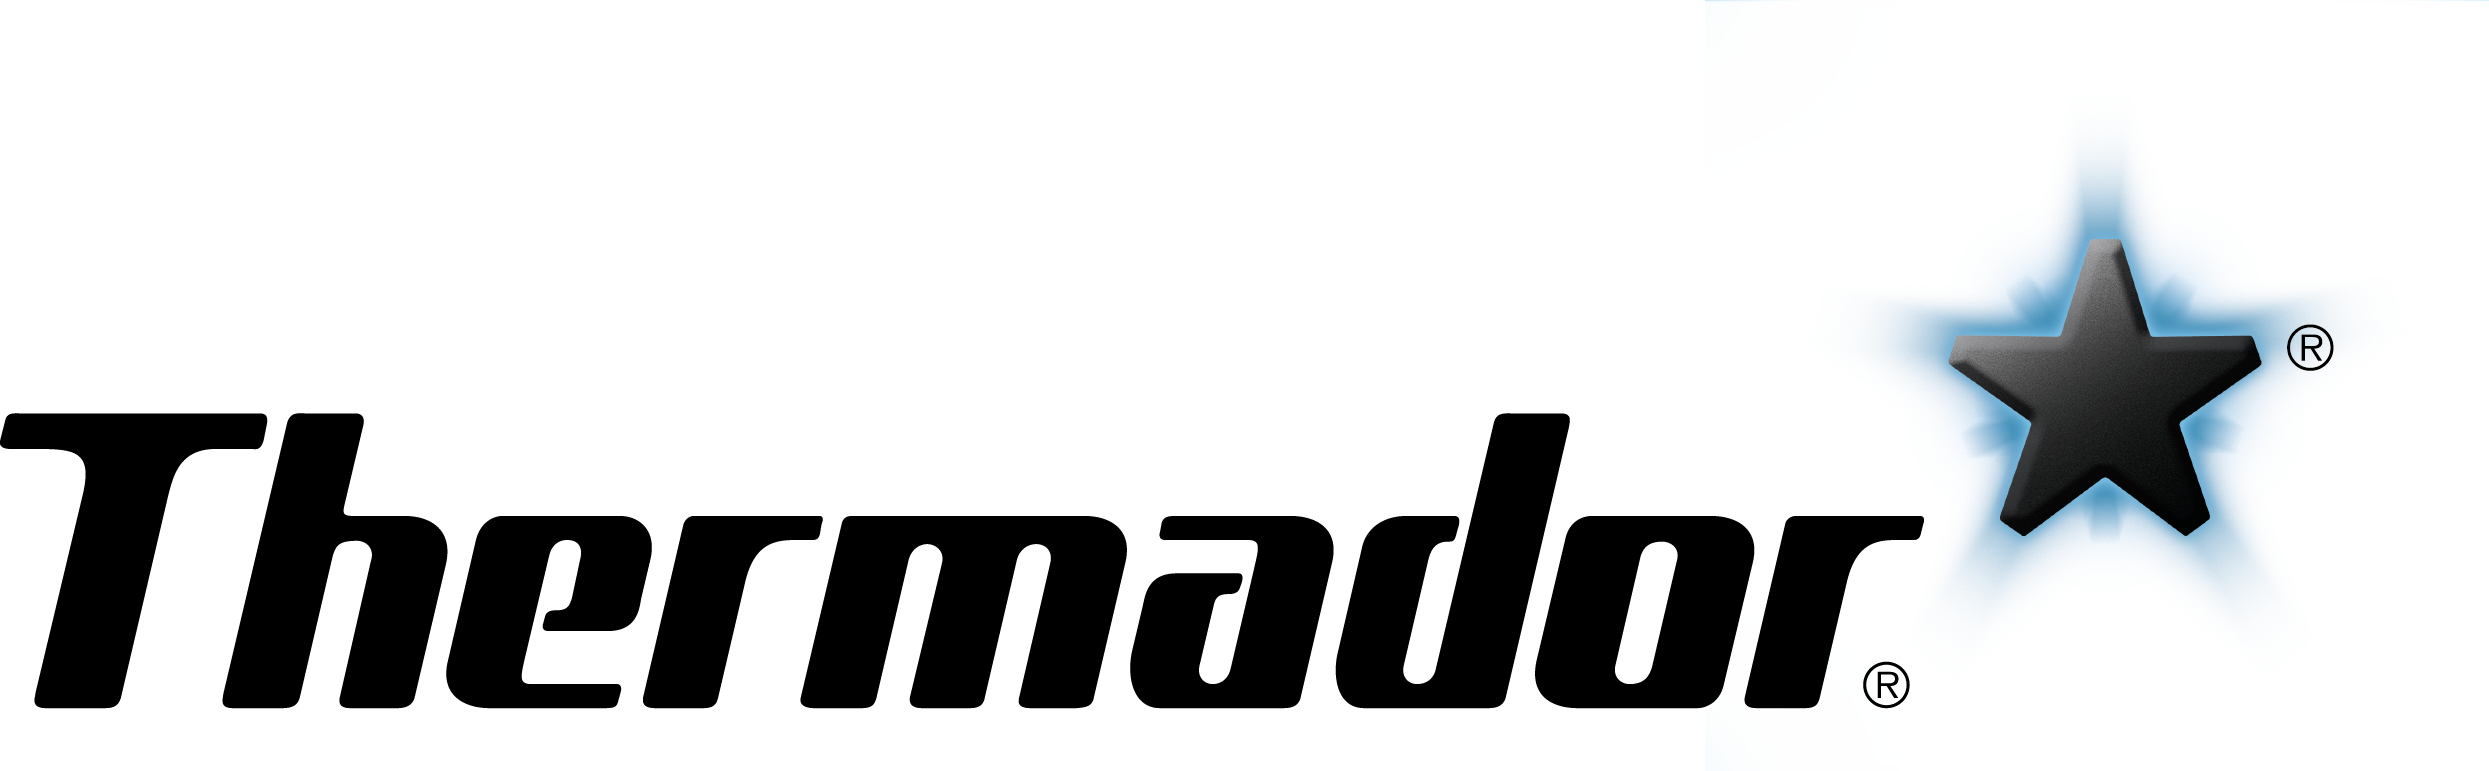 Thermador Fridge Freezer Service, Maytag Fridge Service Near Me